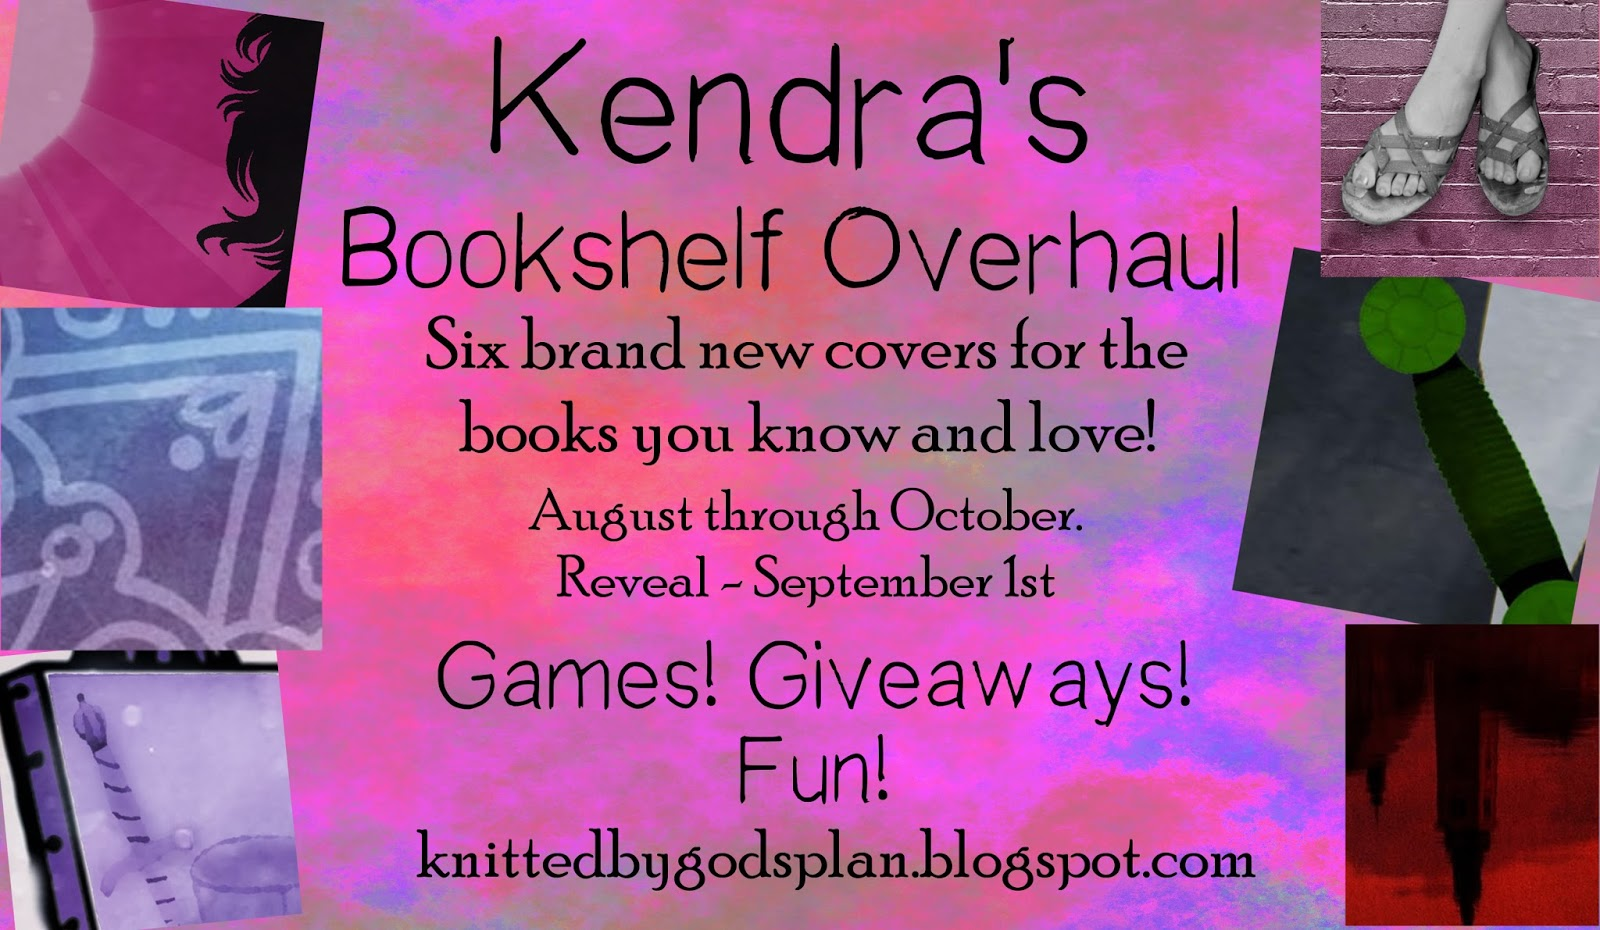 Knitted by God's Plan: Bookshelf Overhaul + Giveaway